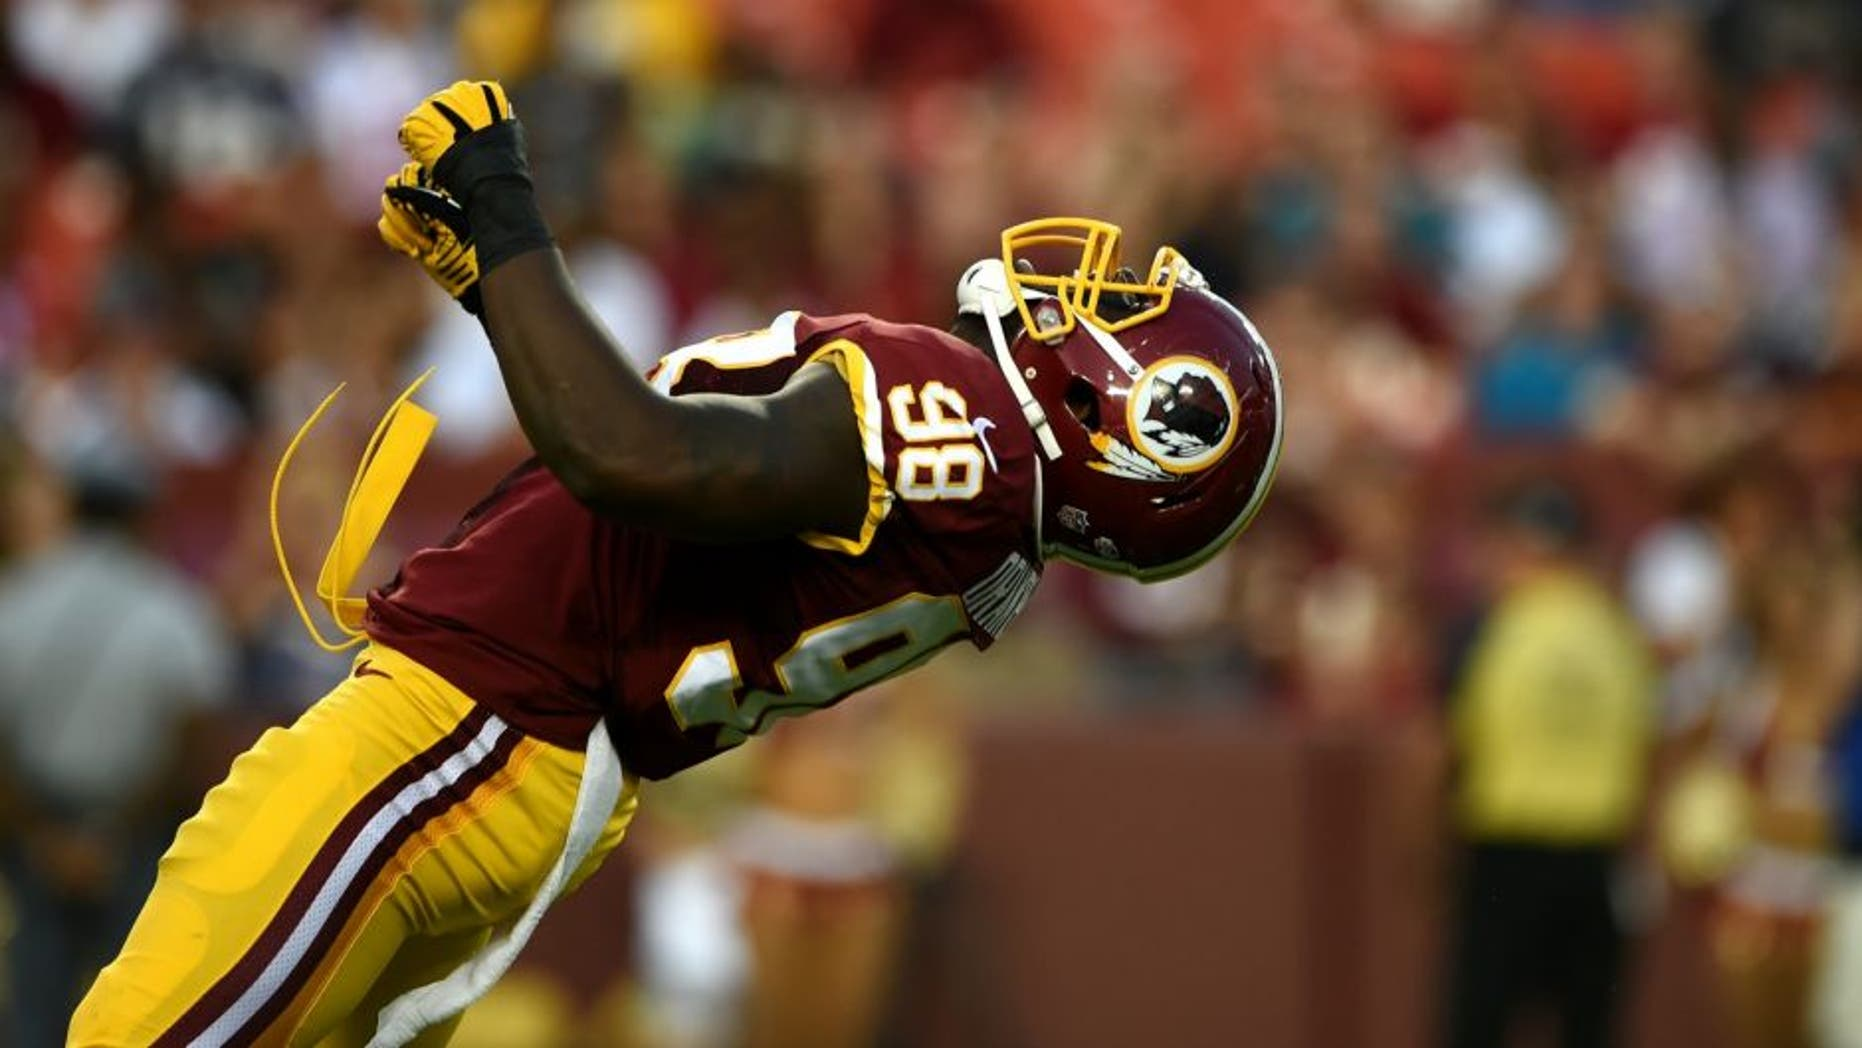 LANDOVER, MD - AUGUST 07: Outside linebacker Brian Orakpo #98 of the Washington Redskins celebrates after sacking quarterback Ryan Mallett #15 of the New England Patriots (not pictured) in the first quarter during a preseason NFL game at FedExField on August 7, 2014 in Landover, Maryland. (Photo by Patrick Smith/Getty Images)